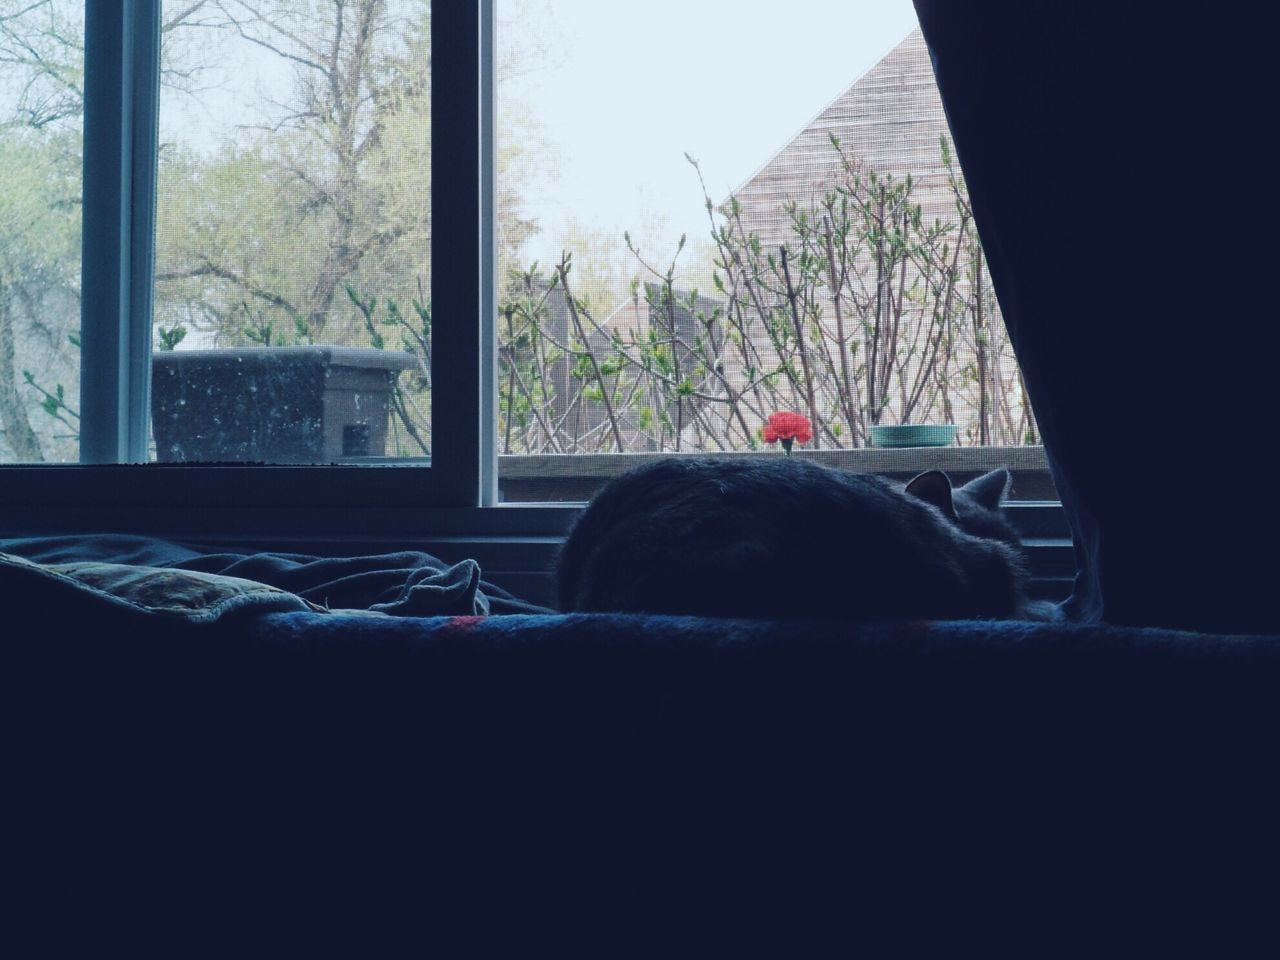 window, indoors, home interior, day, domestic room, no people, tree, close-up